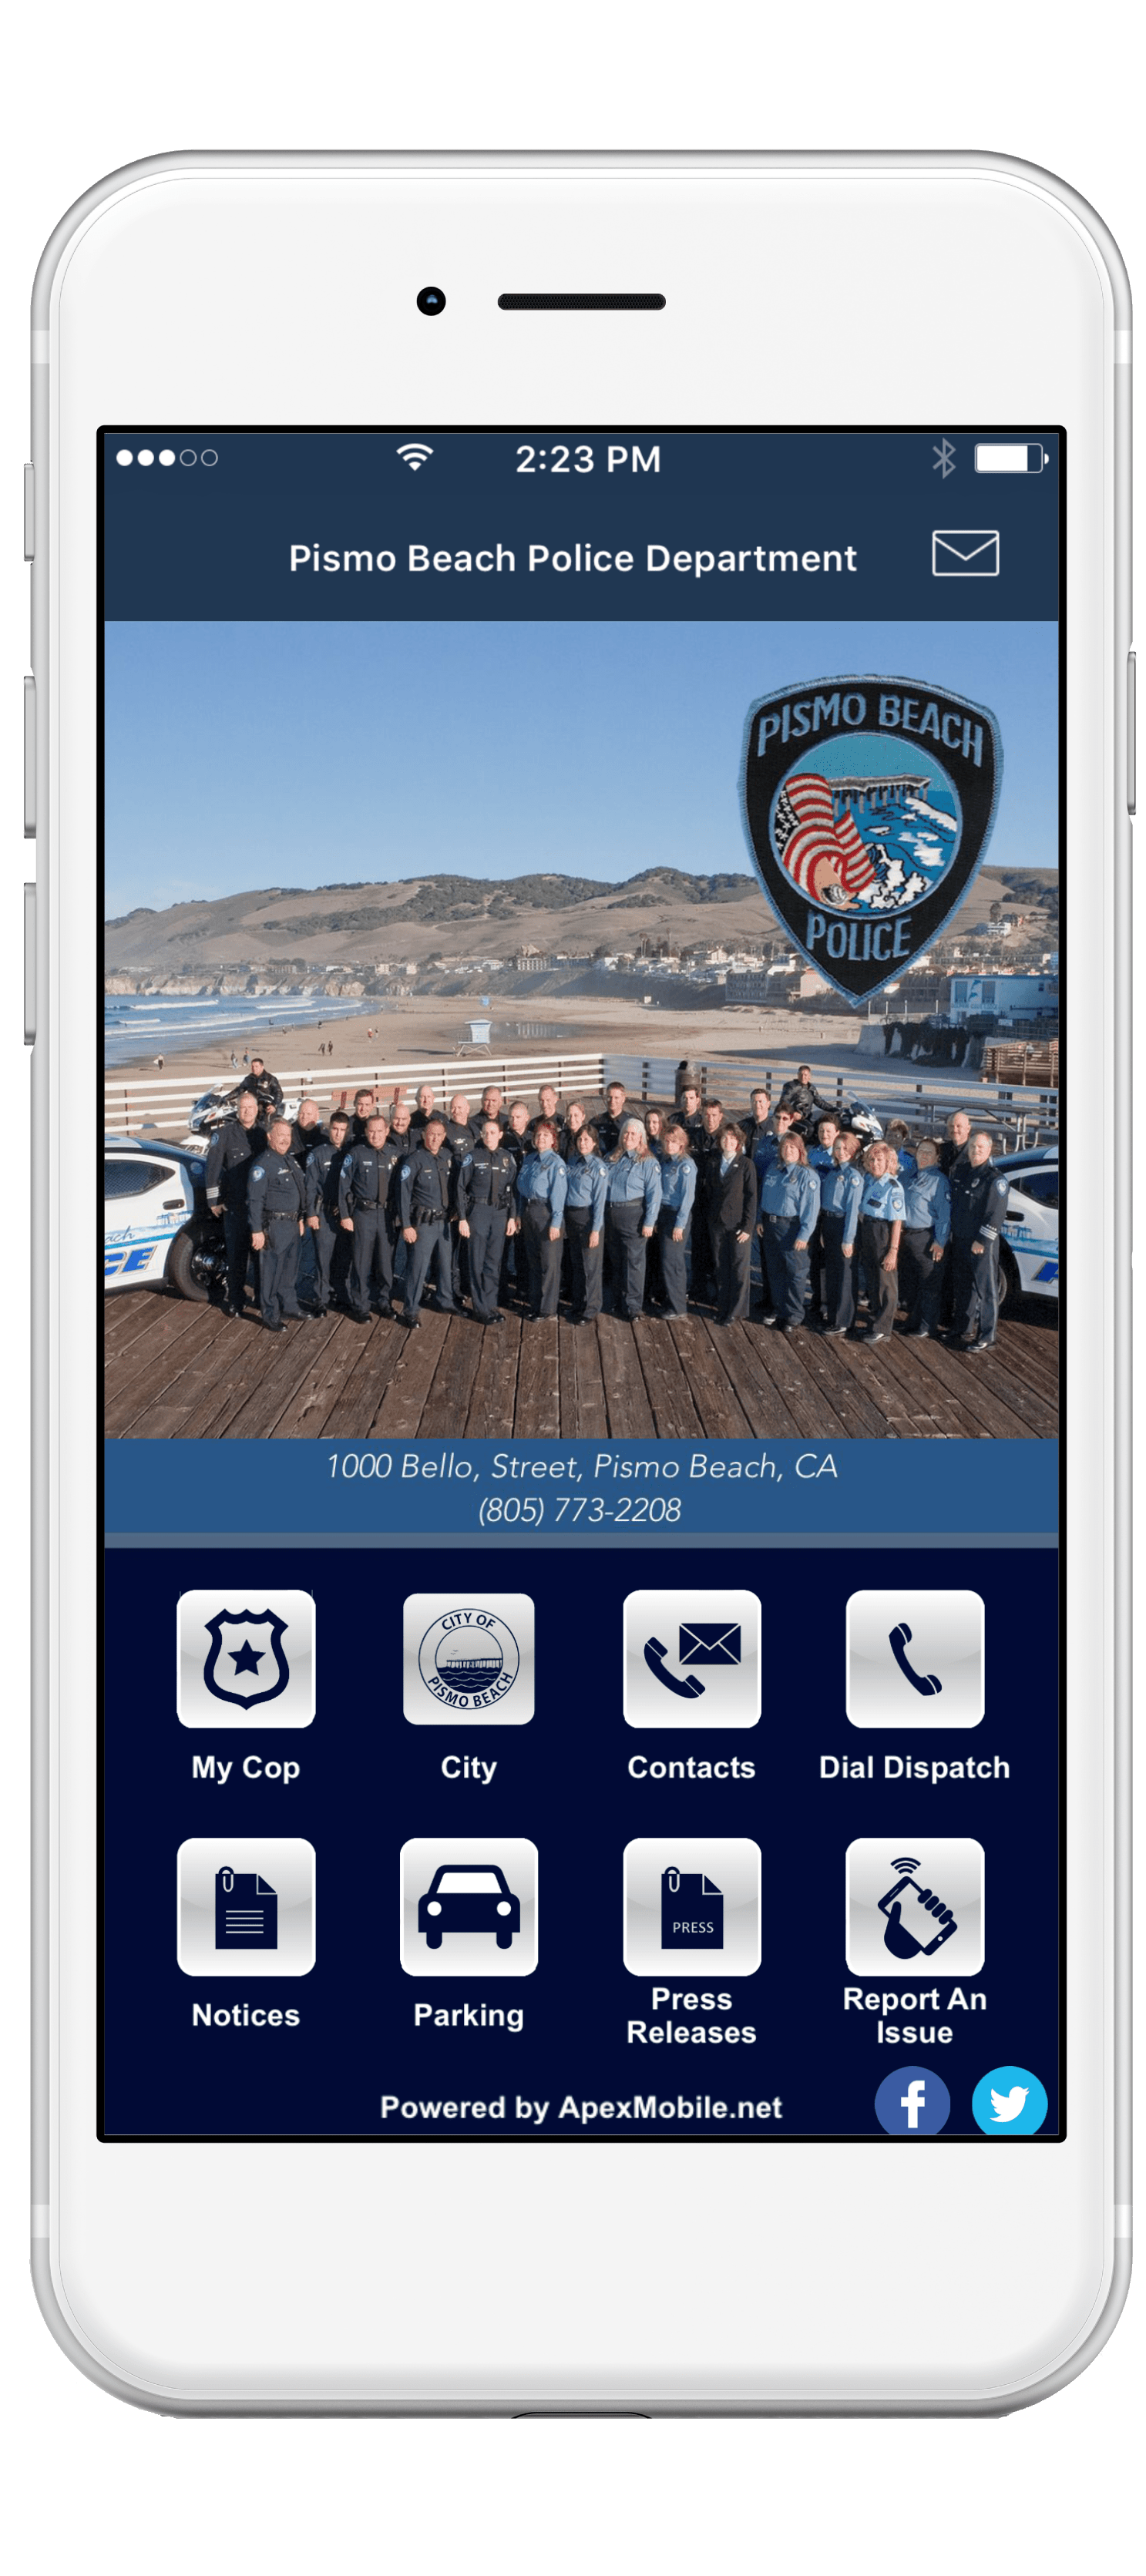 pismo beach police department mobile app screenshot-min